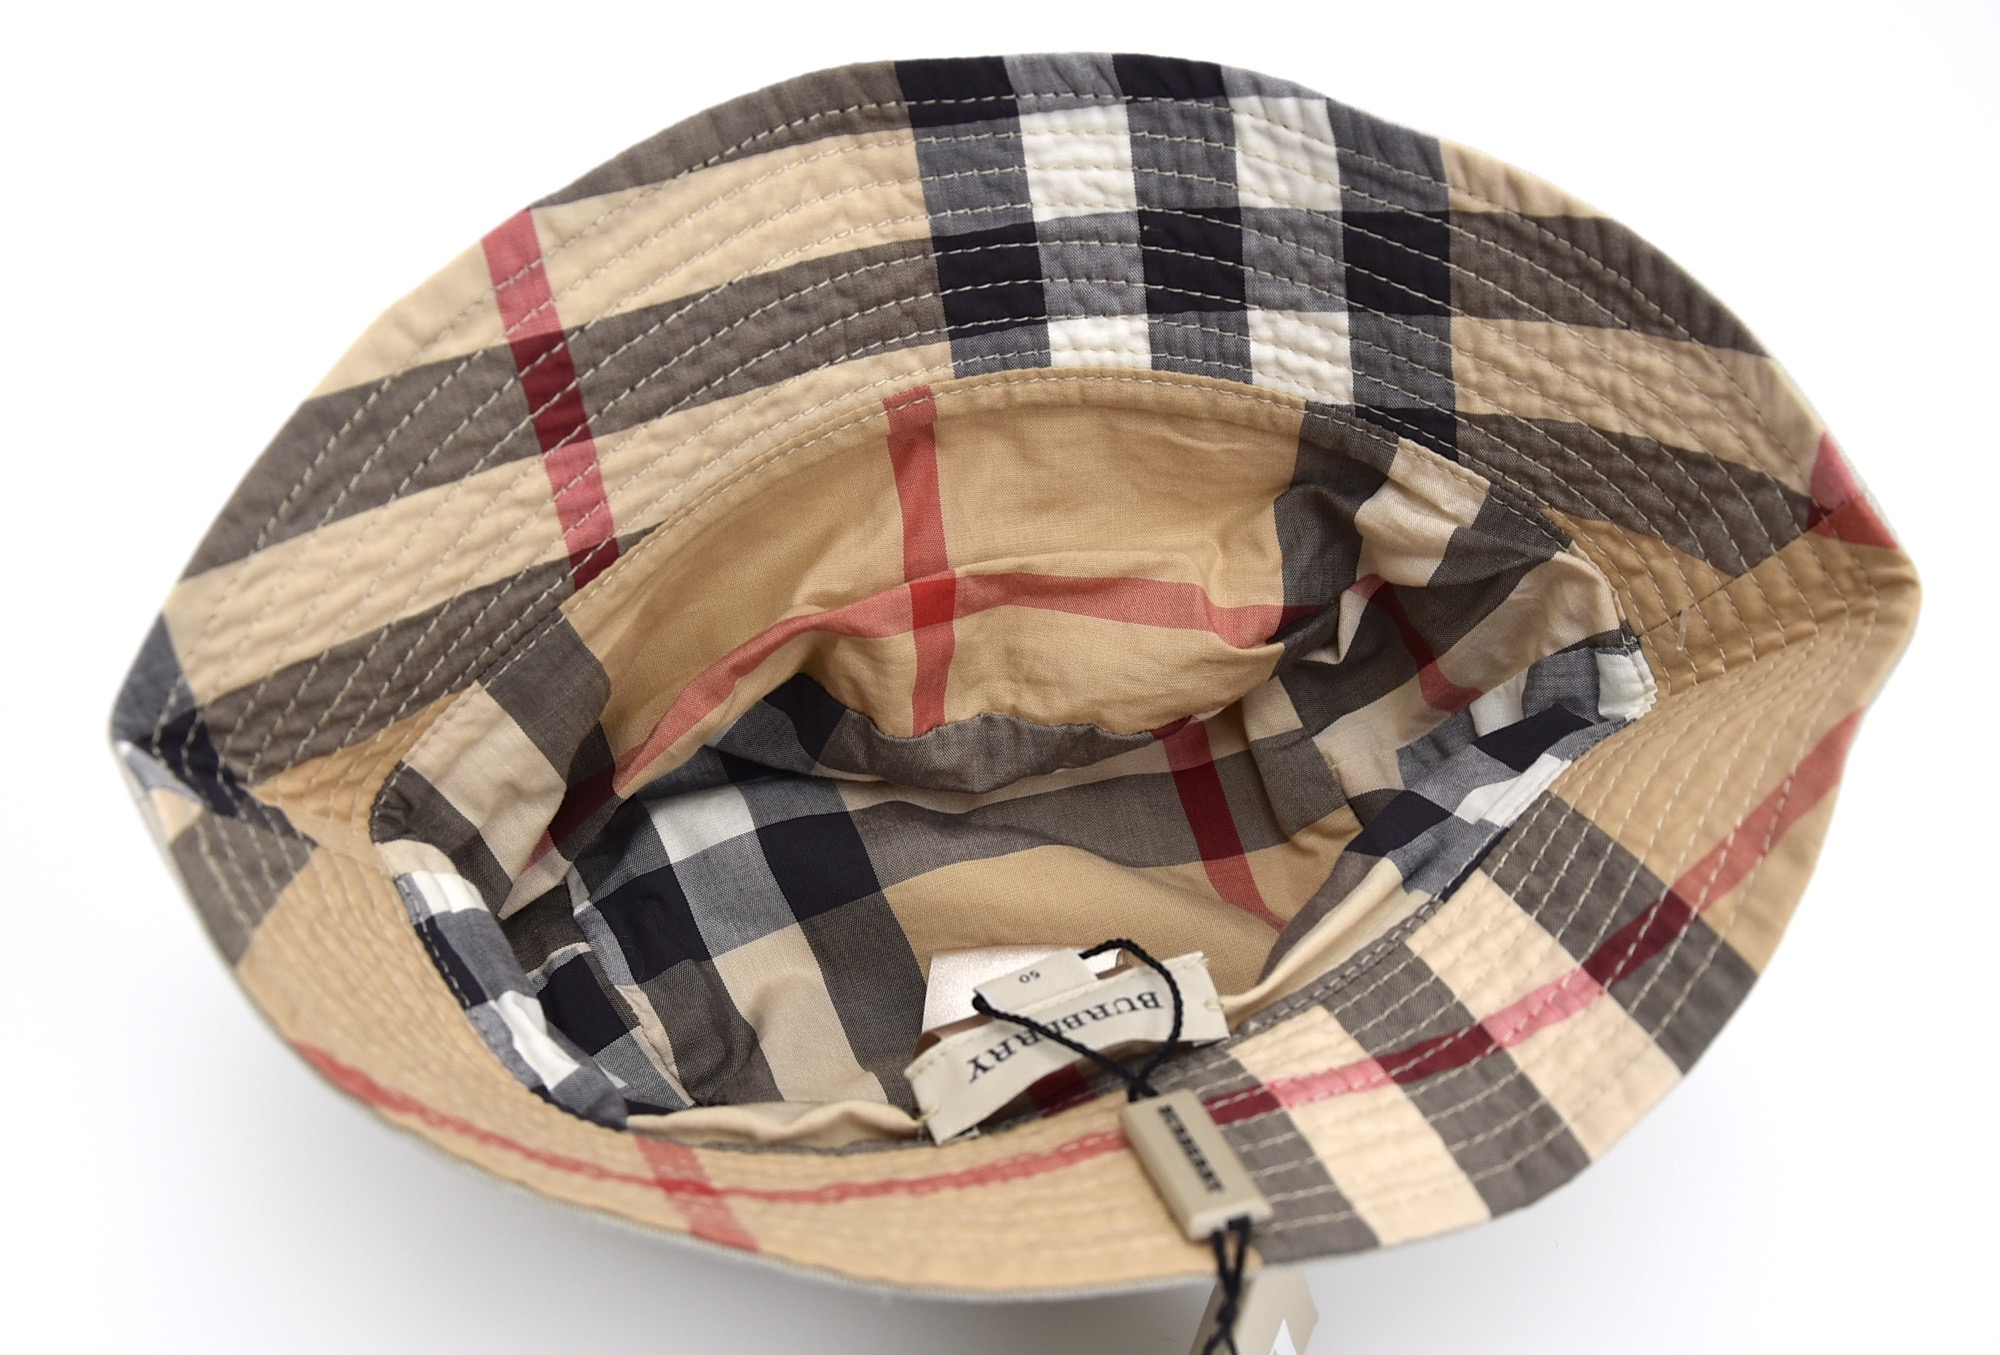 Acquista cappello burberry - OFF32% sconti 2938e101961e